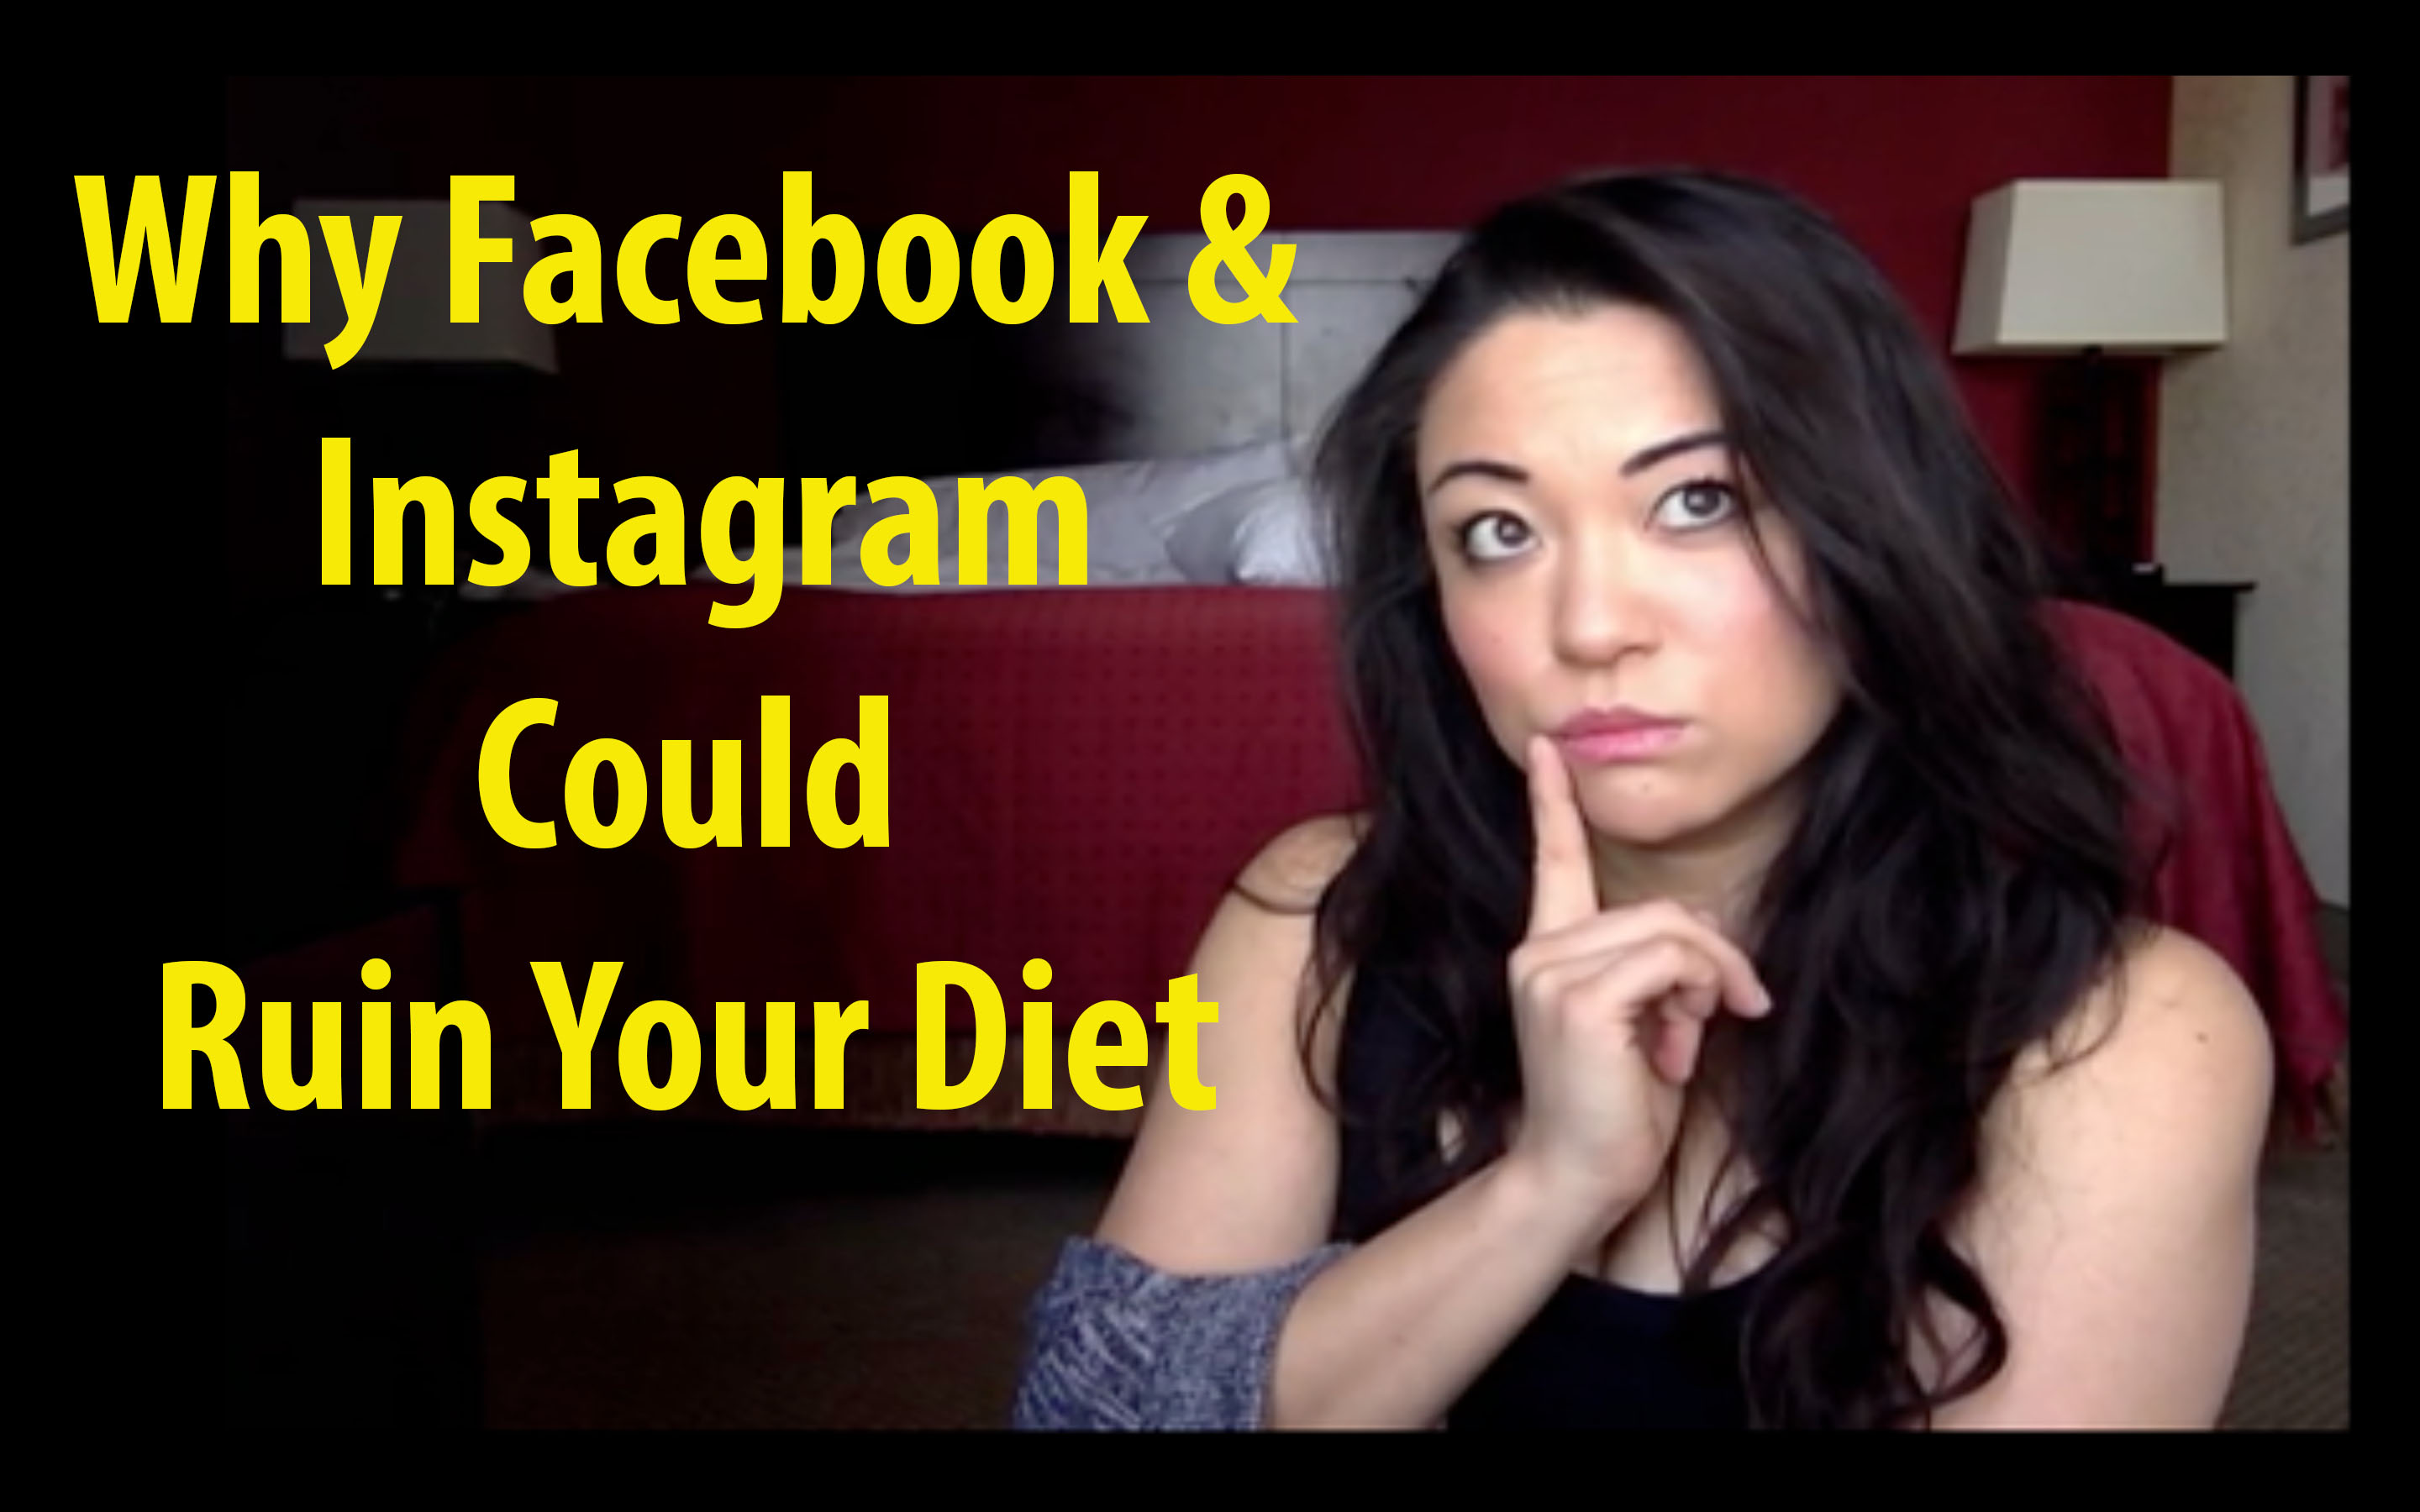 Dieting Problems: Why Facebook Makes It Worse